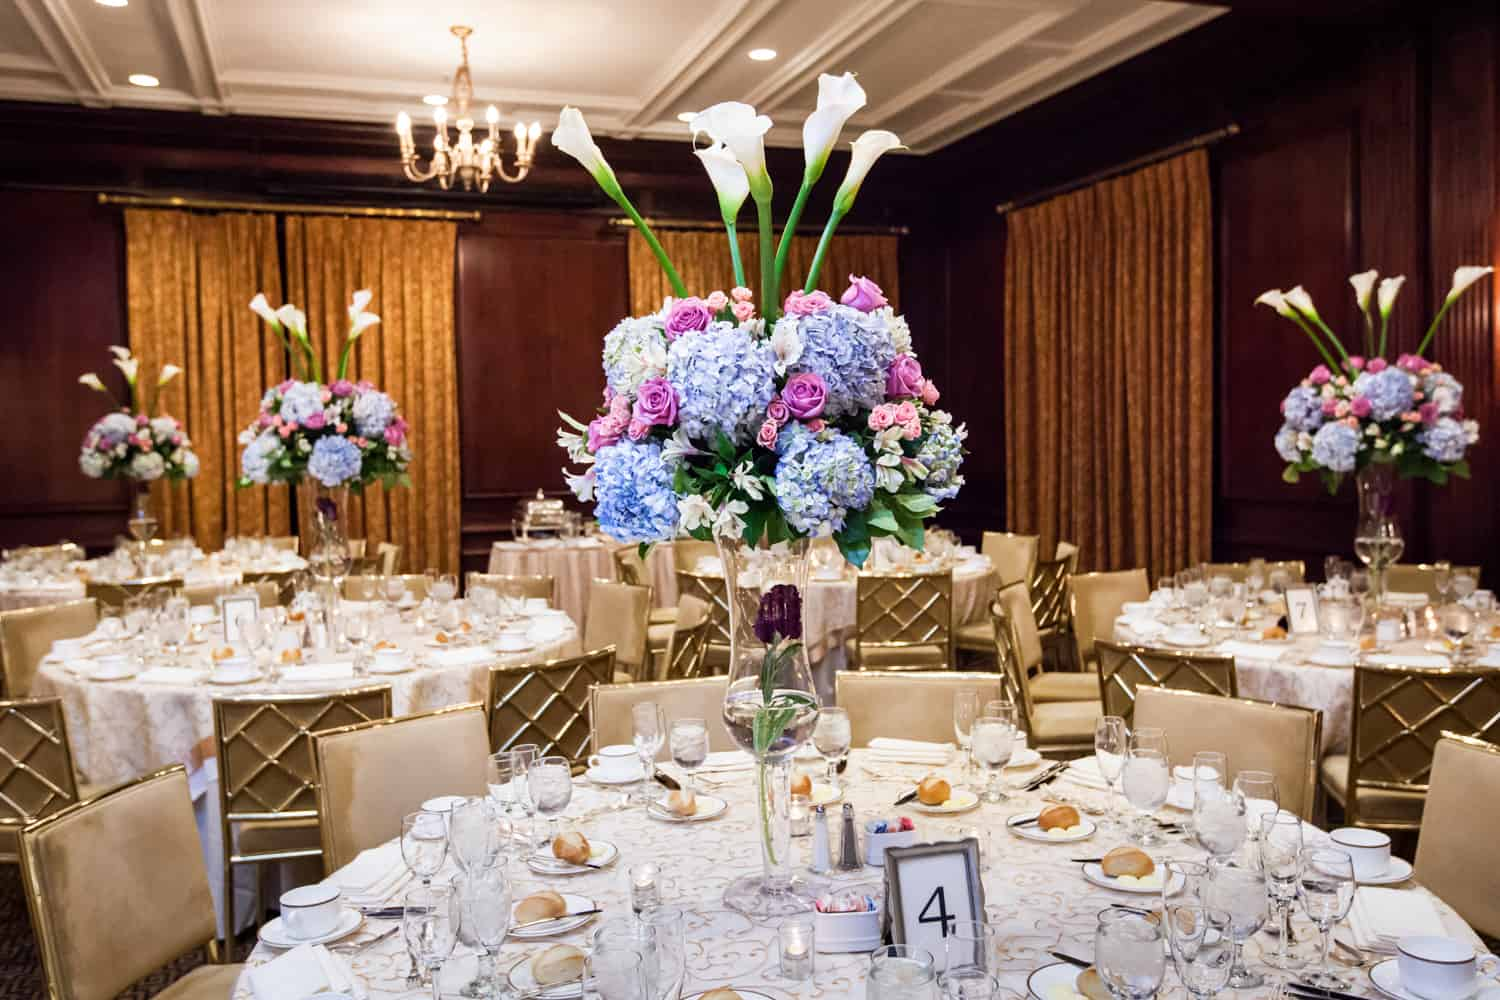 Table settings with large floral centerpieces at Harvard Club wedding reception